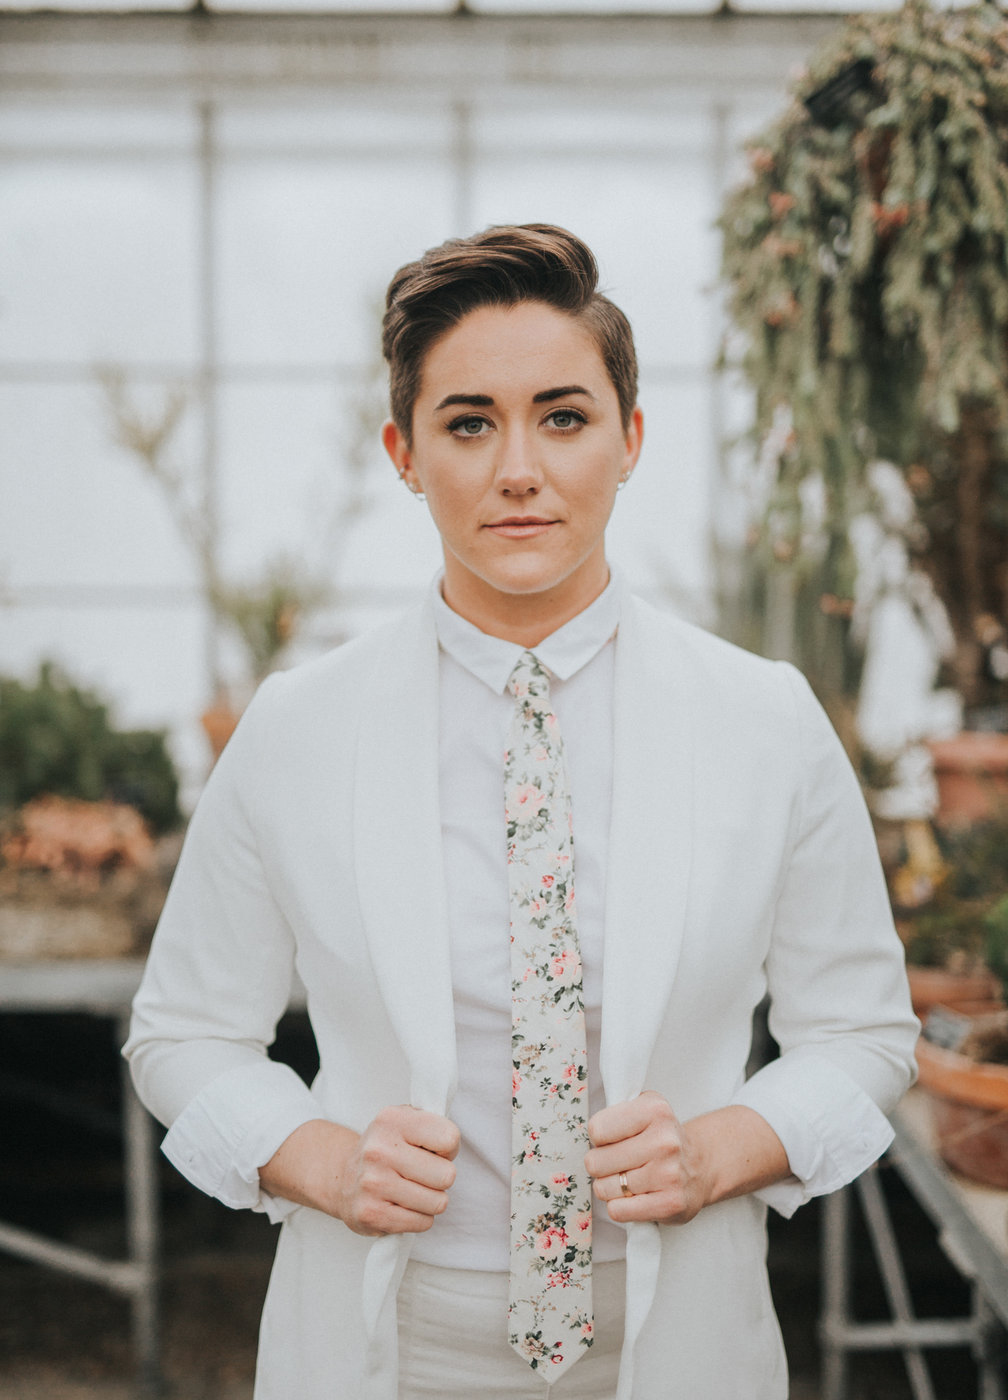 elopement outfit inspiration bride wearing white suit